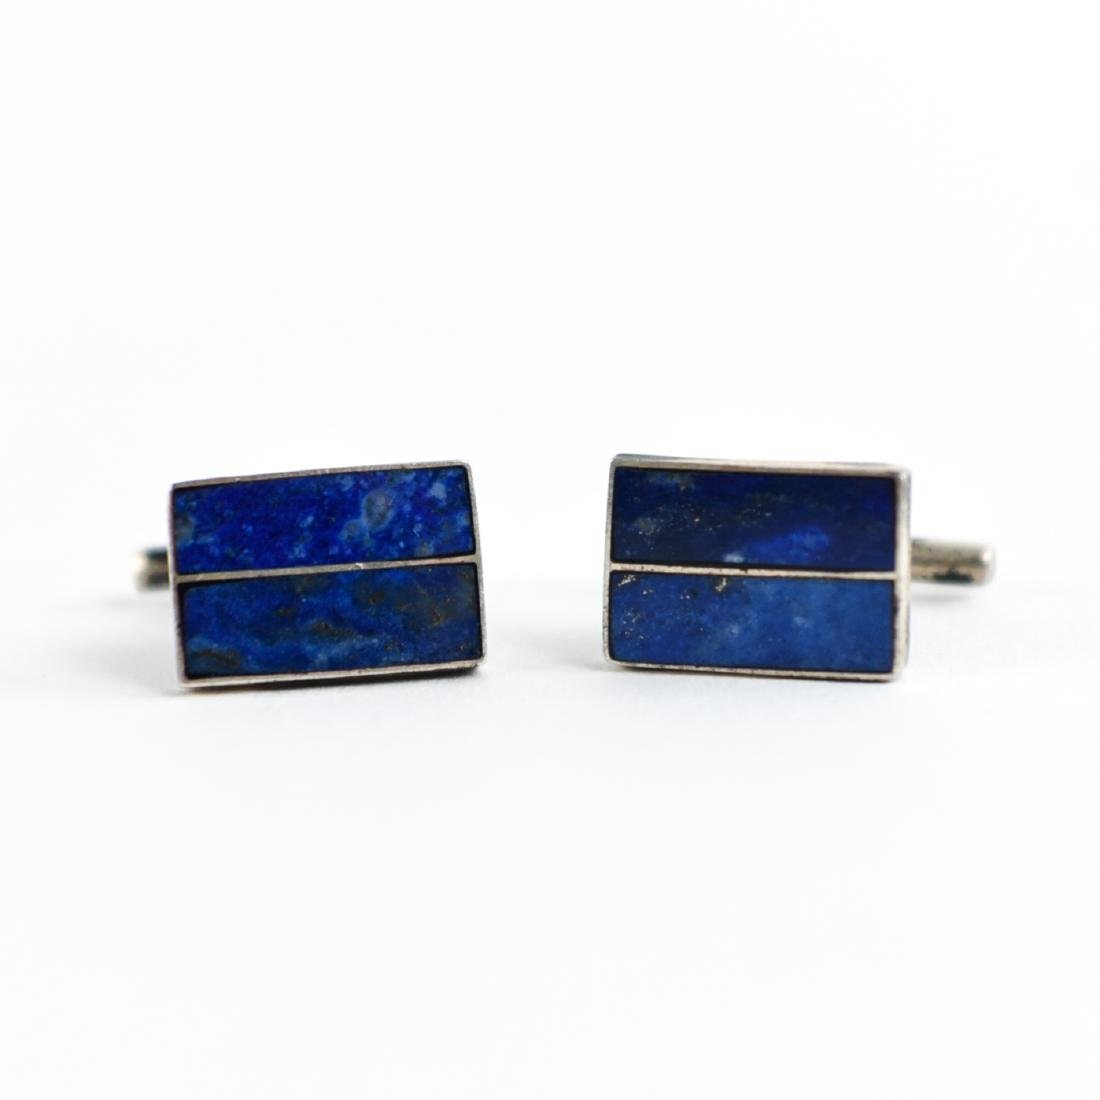 PAIR OF STERLING AND LAPIS CUFFLINKS